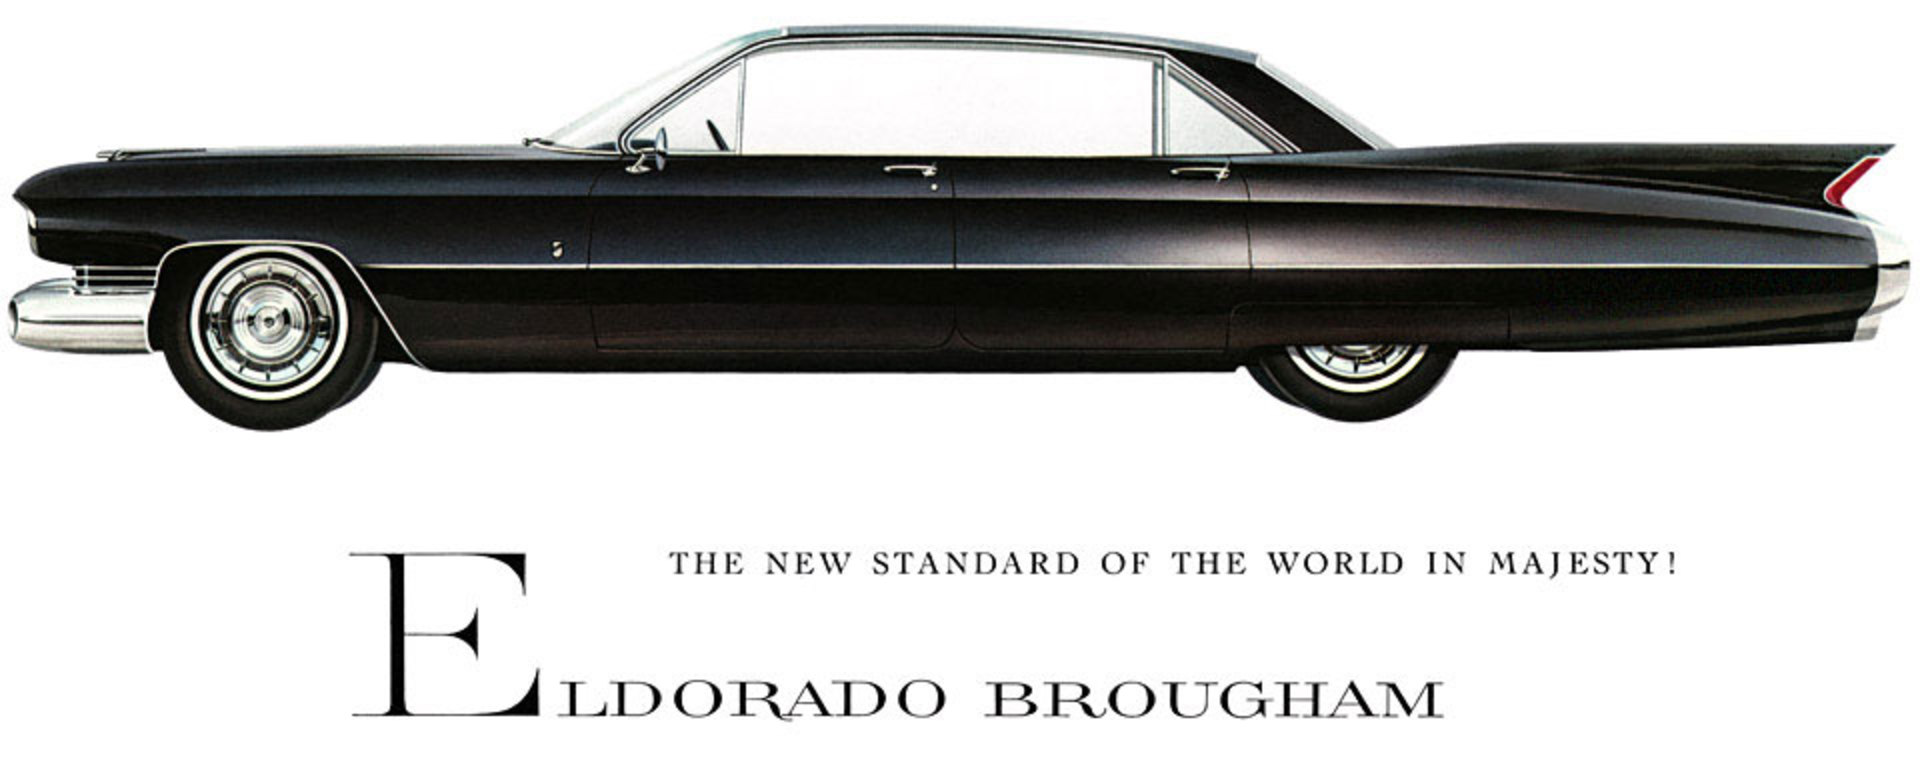 cadillac eldorado brougham s. (image courtesy of Plan59).